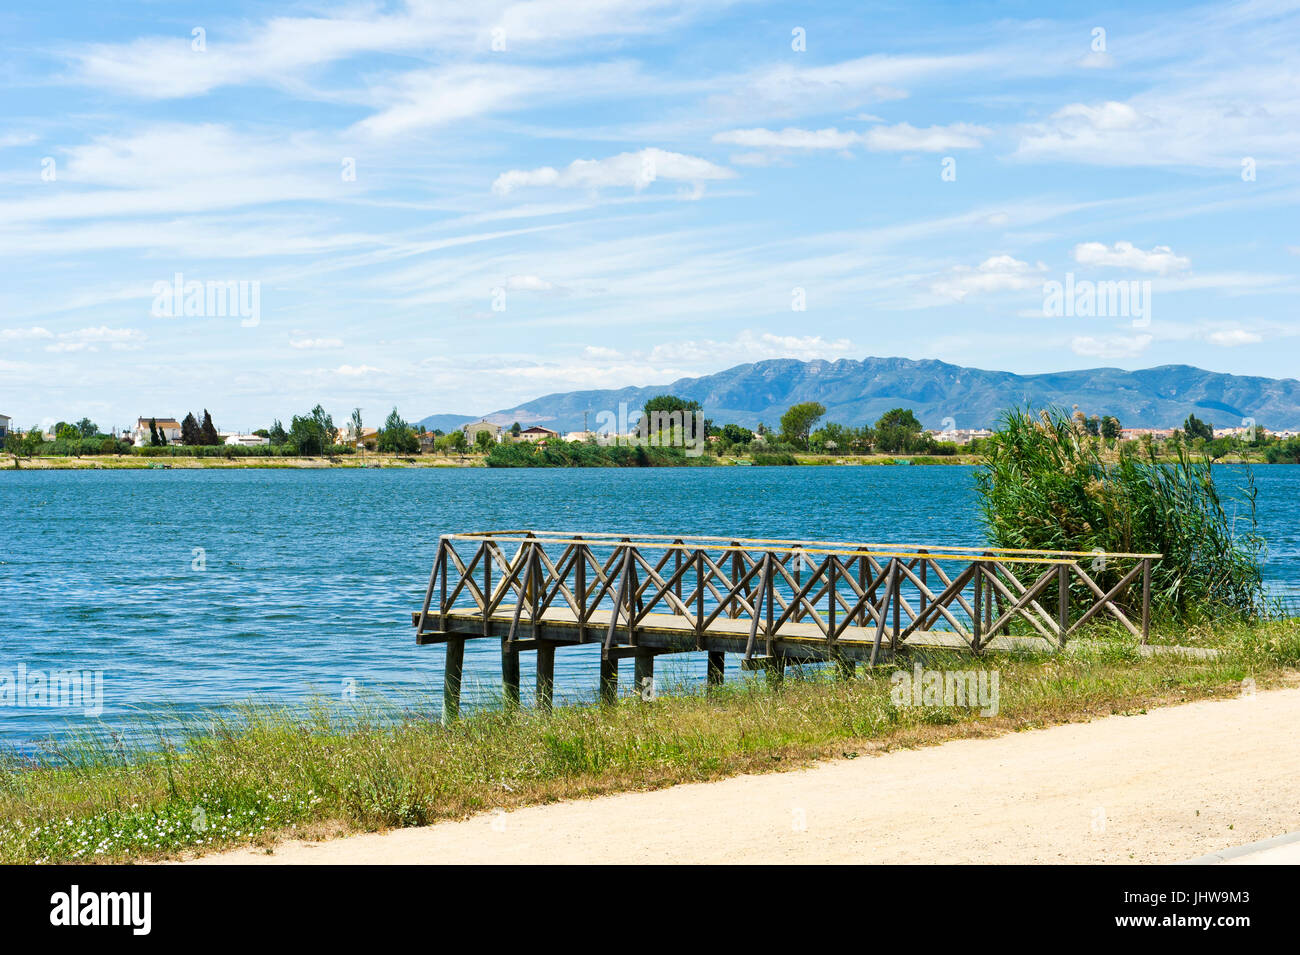 River Ebre, Deltebre, Delta se lEbre, Eastern Spain Stock Photo